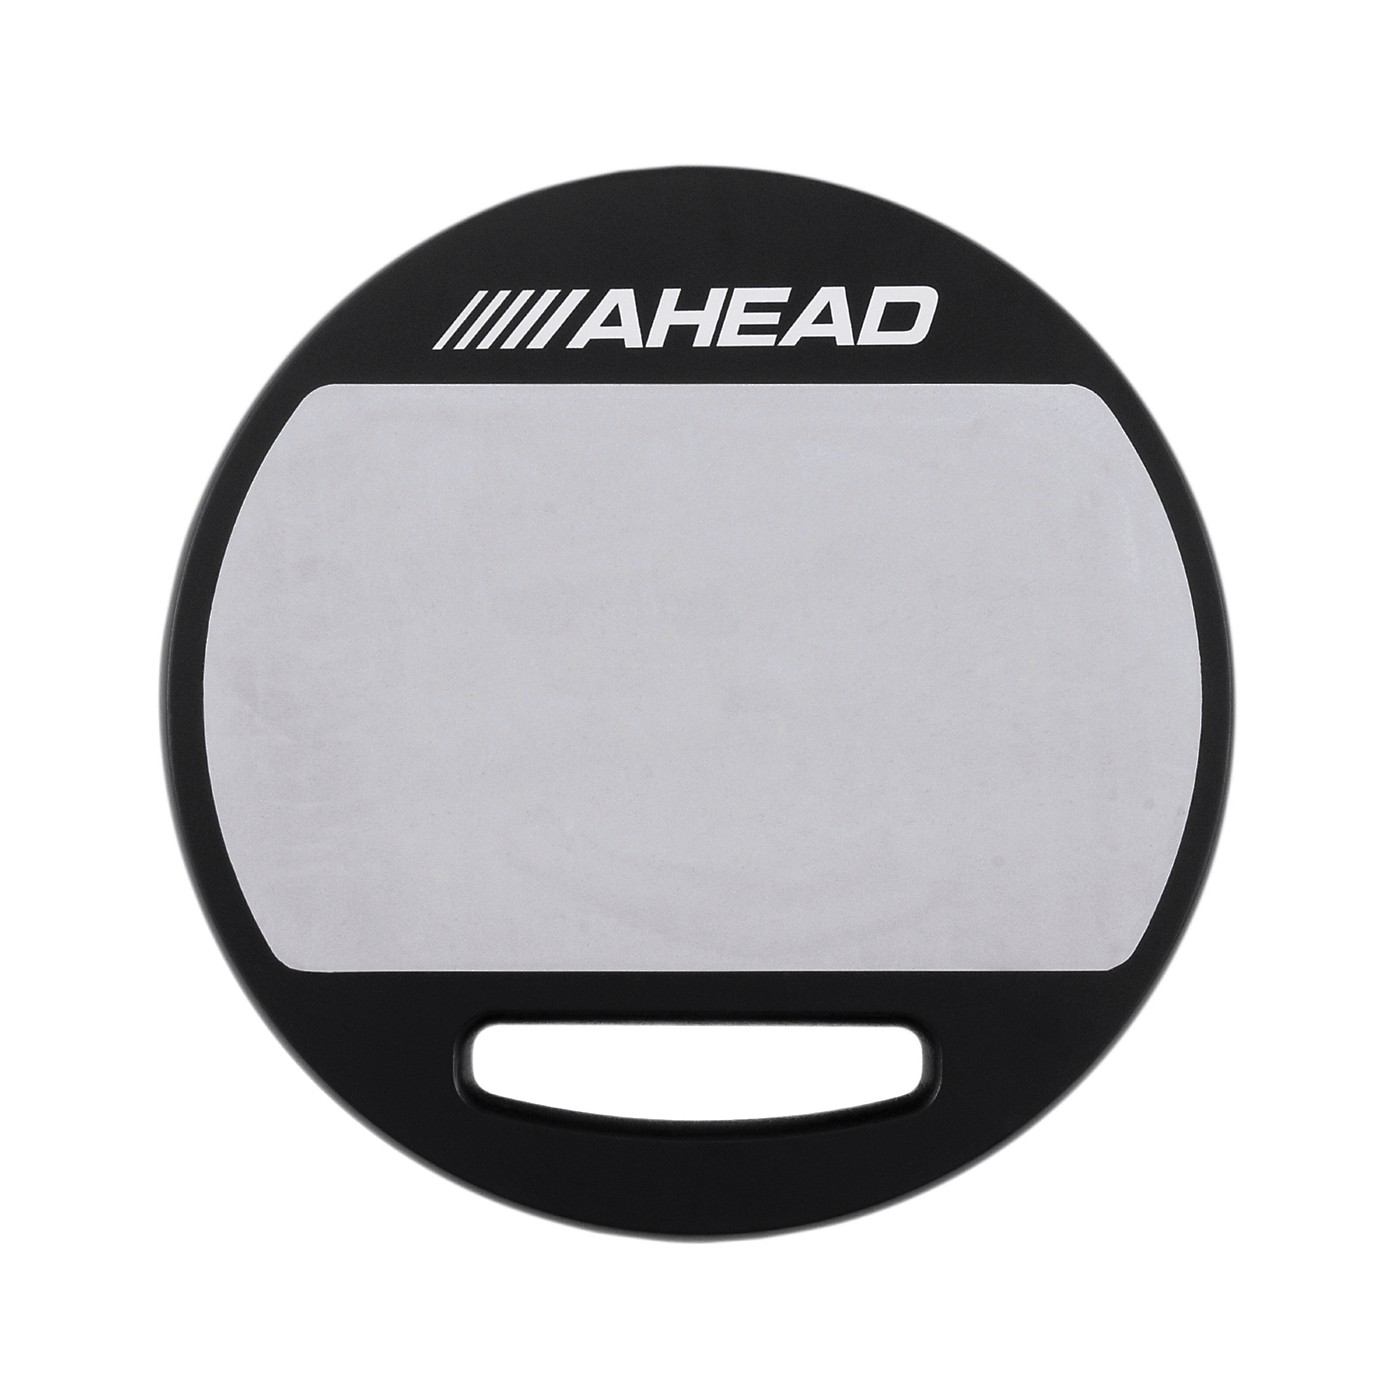 Ahead 10 Inch Practice Pad with Snare Sound thumbnail